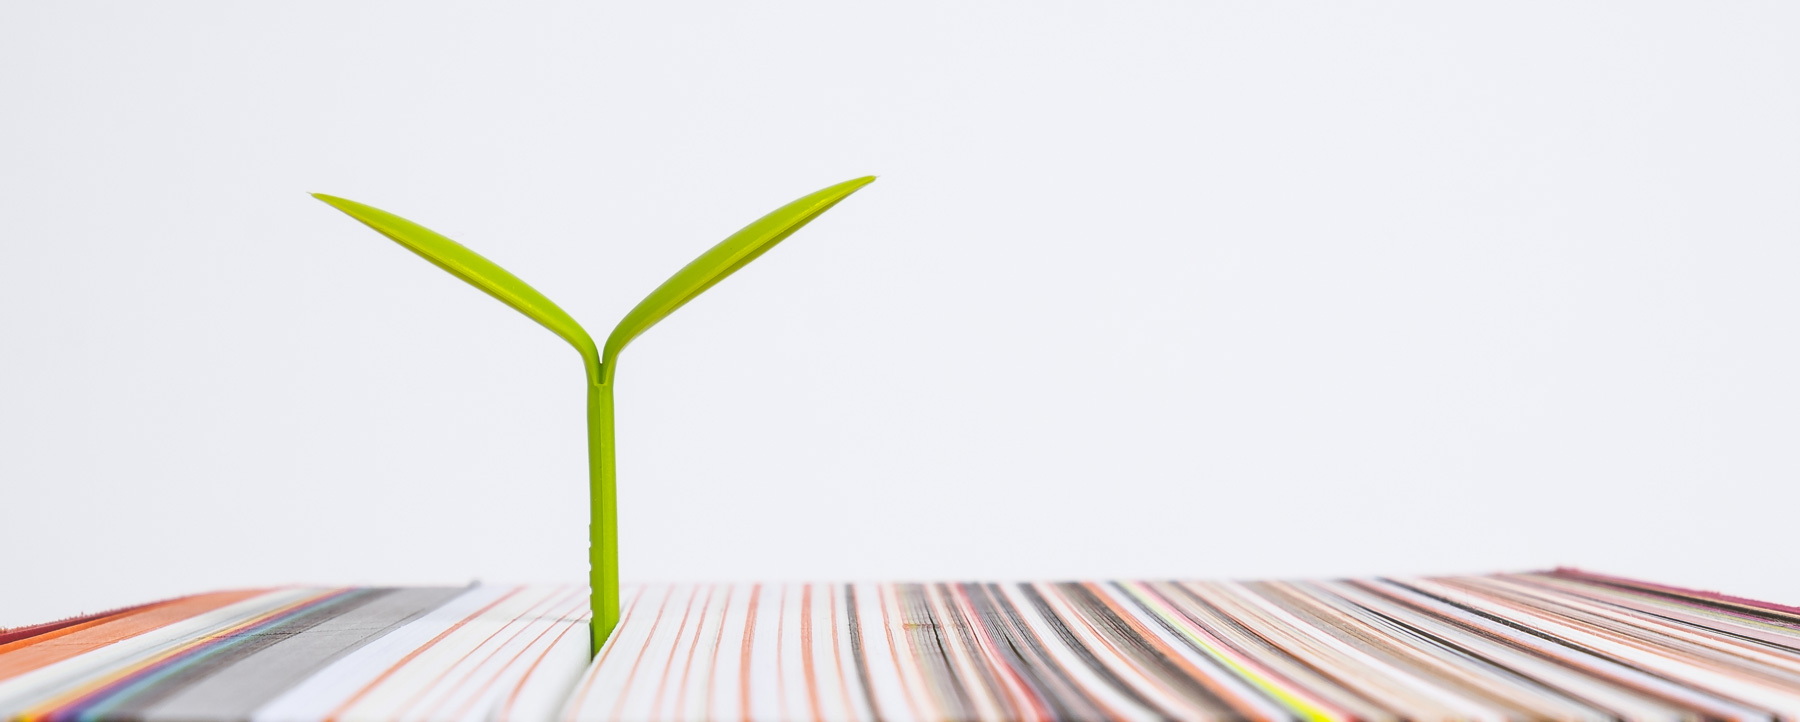 The Environment - We're passionate about our planet and 100% committed to ensuring that our services are environmentally friendly. To this end we are extremely proud to be certified with ISO 14001 and the Forest Stewardship Council (FSC®). All our paper is sourced from FSC®-certified mills and sustainable sources, and our litho presses use B2 and B3 chemistry-free plates, which have a longer lifespan than traditional, chemically processed plates. Even our litho inks are certified vegan-friendly! And where possible, we use sustainable materials for packaging including wooden pallets and plastic wraps, and we recycle everything.